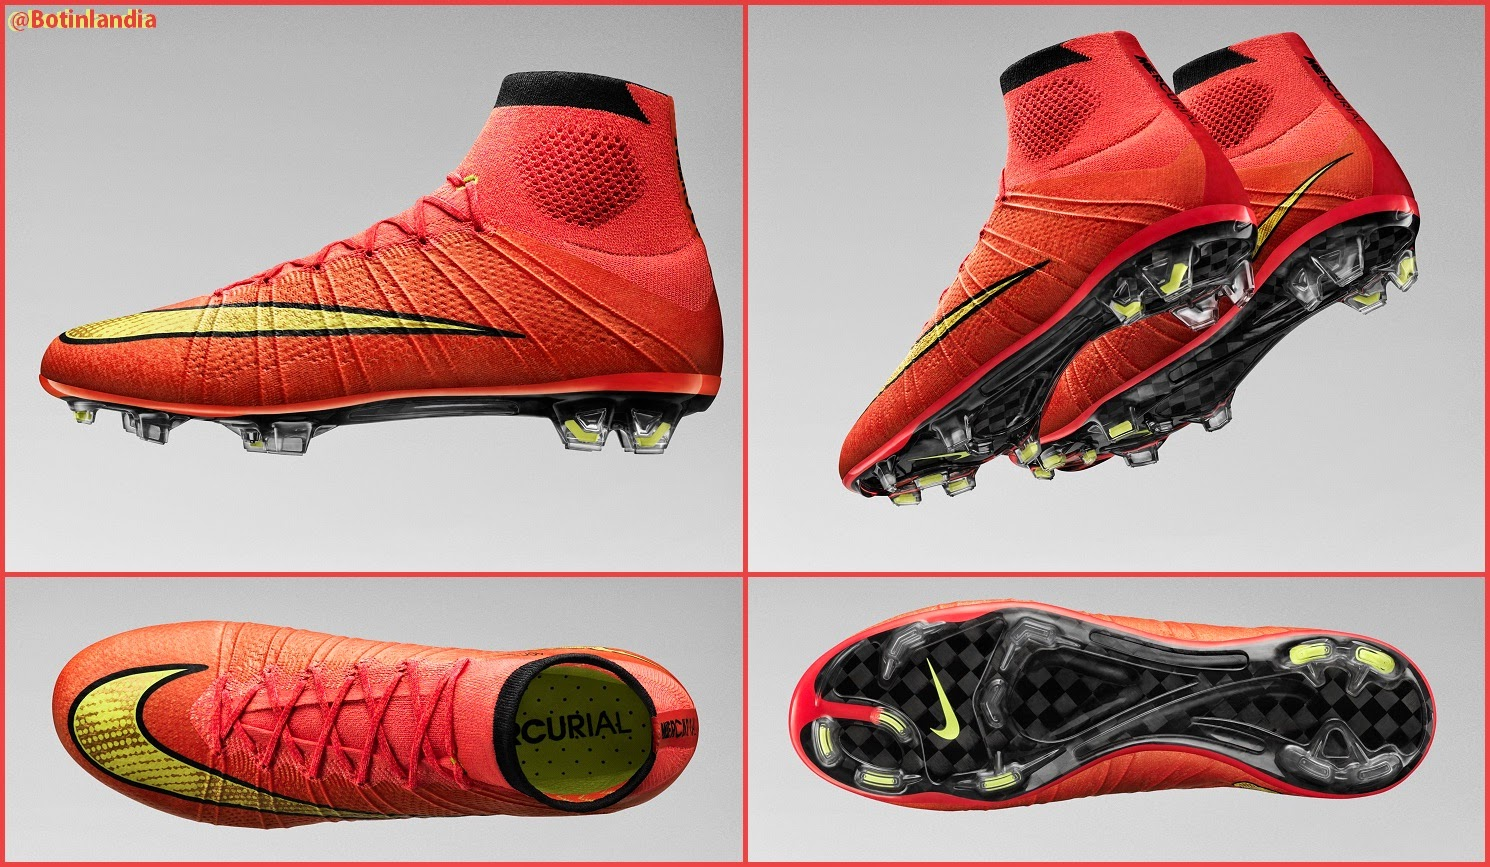 9. Nike SuperFly